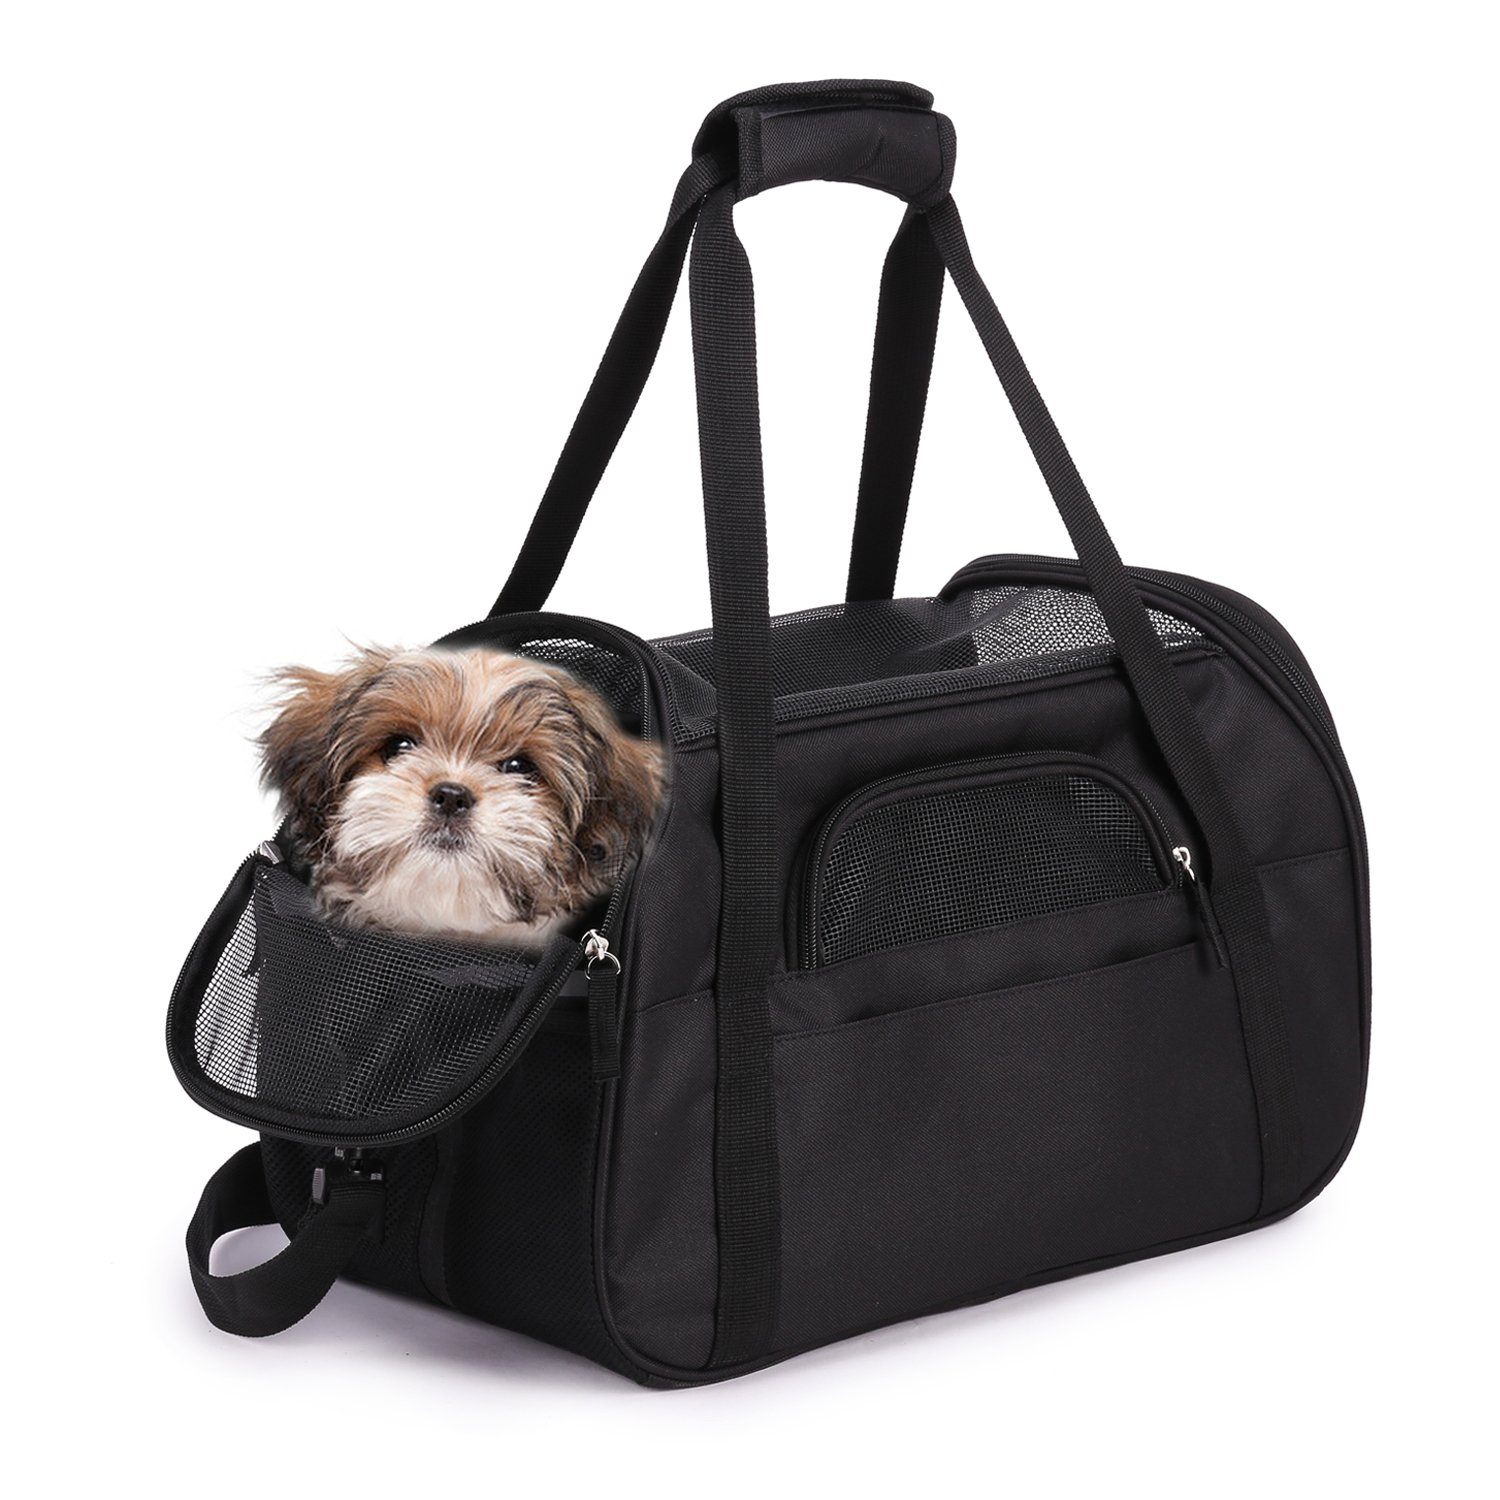 """Jespet Soft Sided Pet Carrier Comfort 17"""" for Airline Travel, Portable Dog Tote Bag for Small Animals, Cats, Kitten, Puppy, Black"""